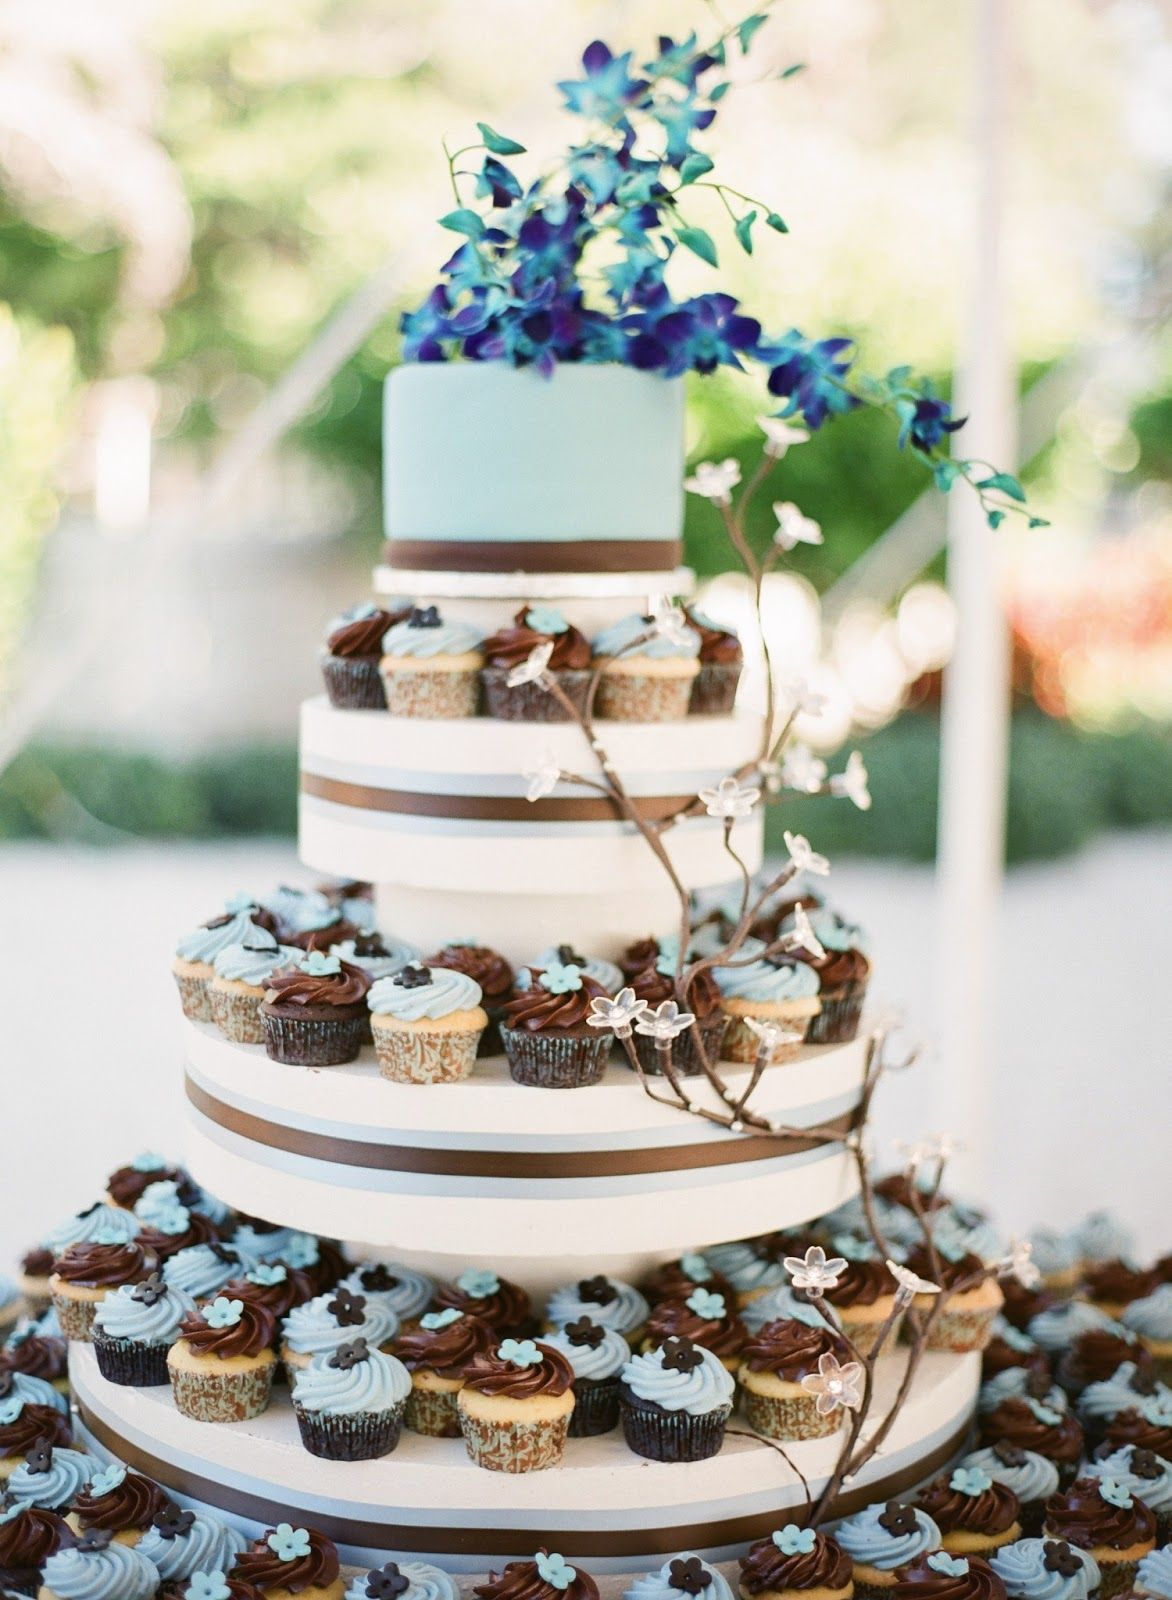 pictures of wedding cakes made out cupcakes pictures of cupcake wedding cakes wedding cake cupcakes 18466